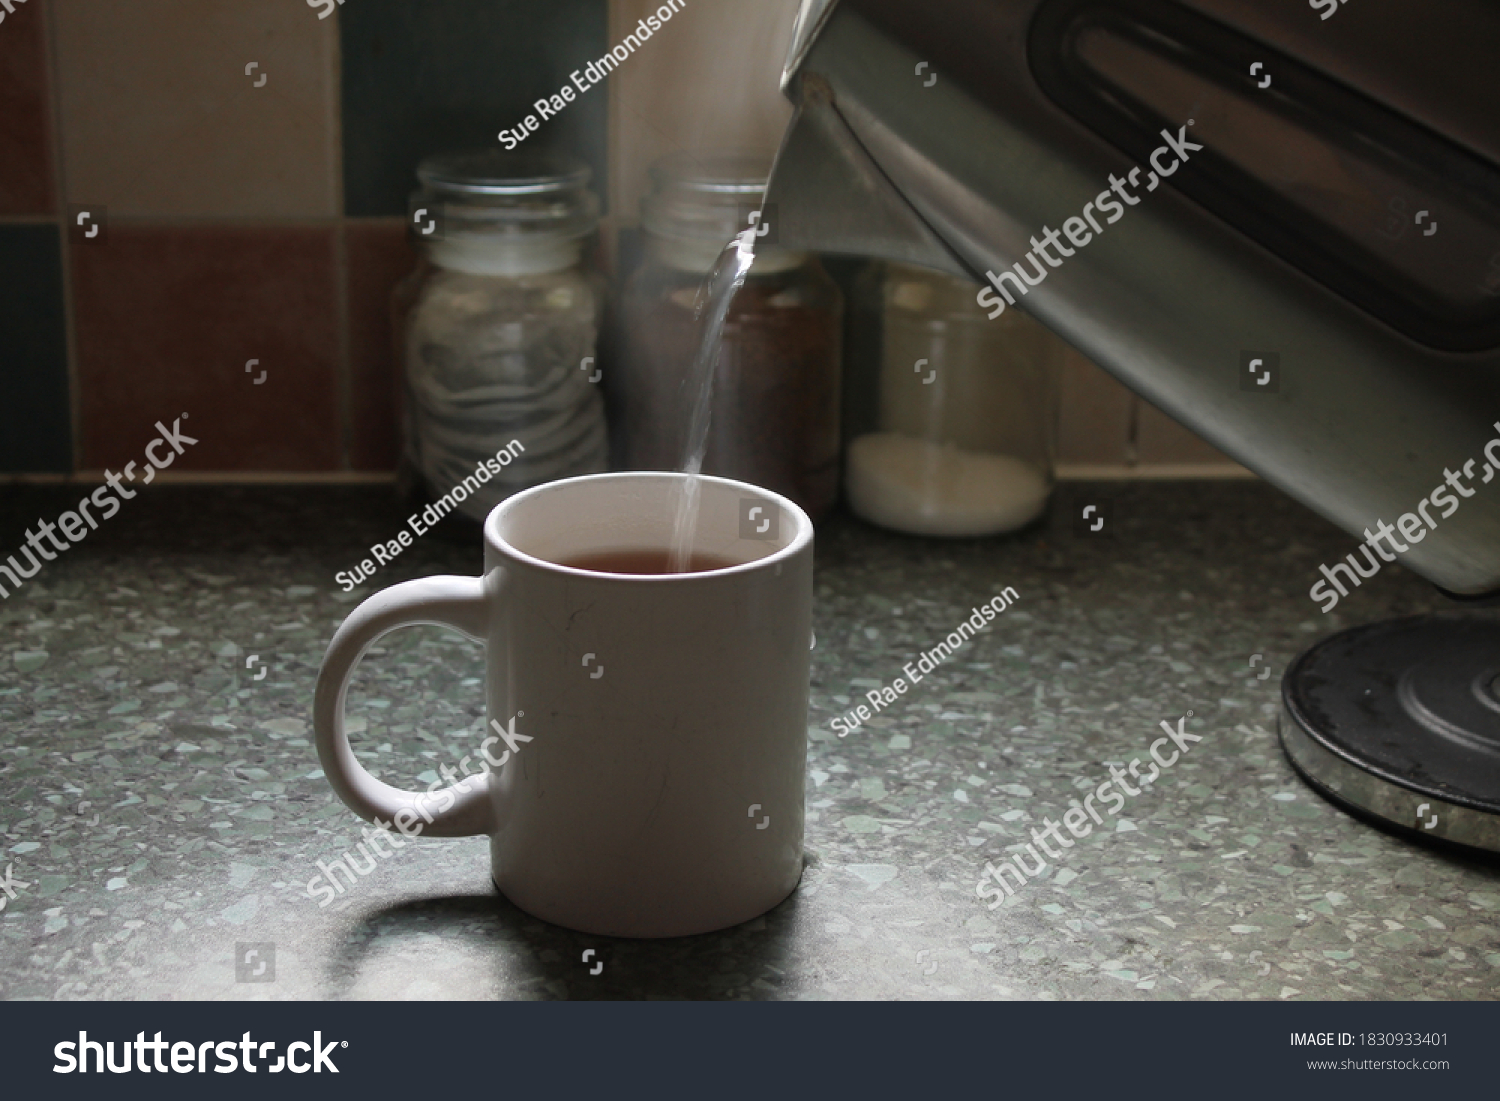 stock-photo-steaming-hot-water-being-pou